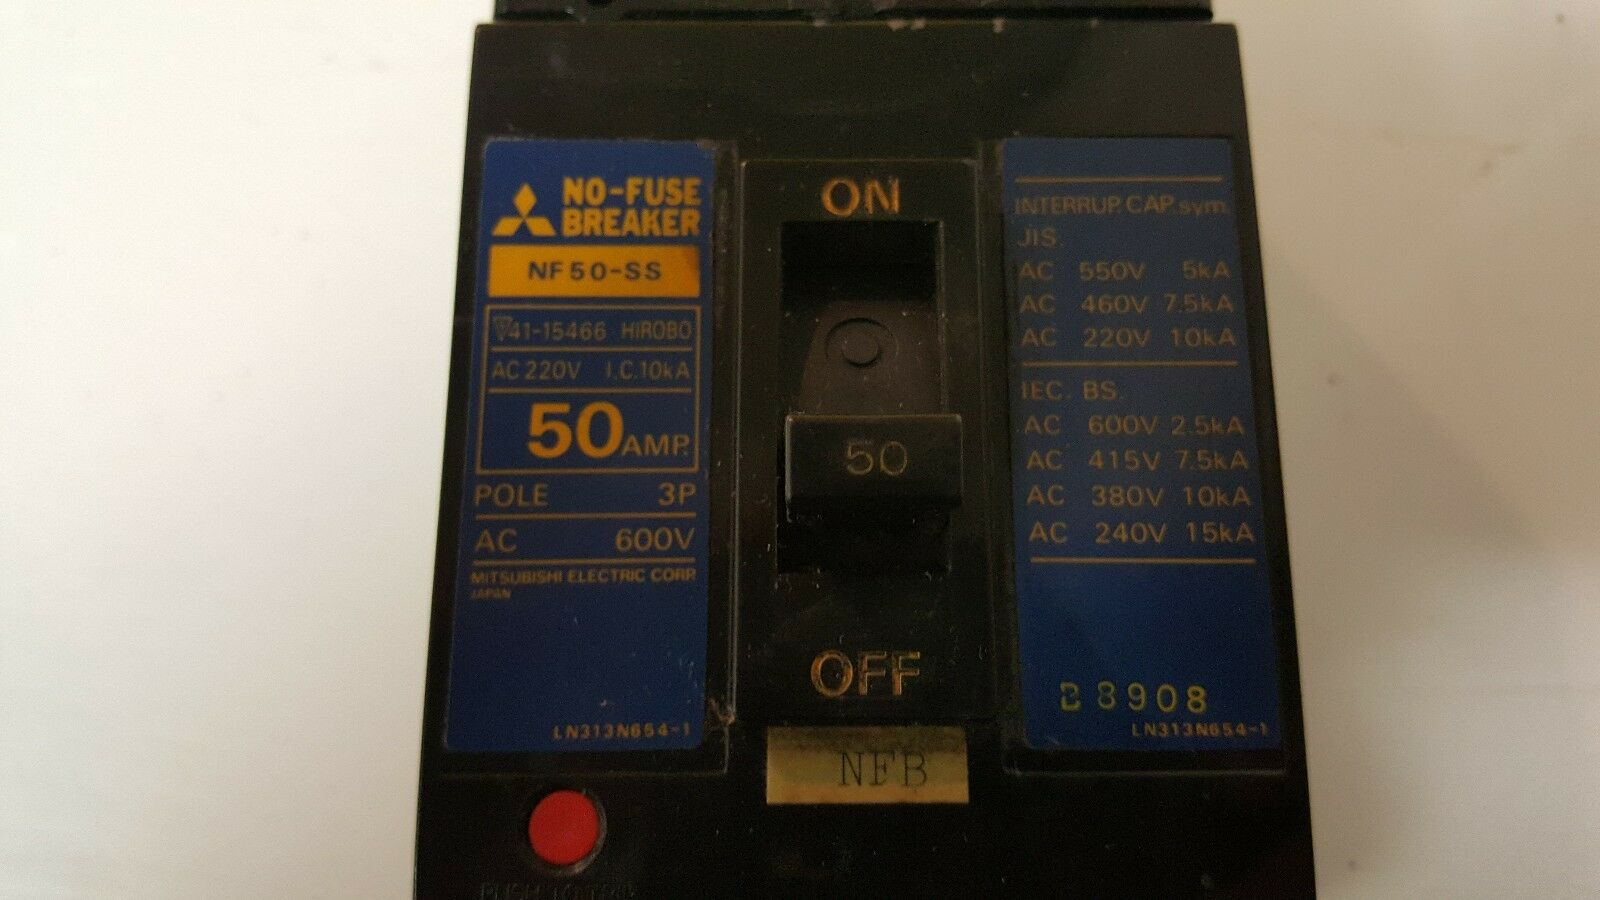 Mitsubishi Nf50 Ss 30 Amp 2 Pole Circuit Breaker Ebay Homeline 50amp 2pole Home Gfci Plugin Walmartcom Stock Photo